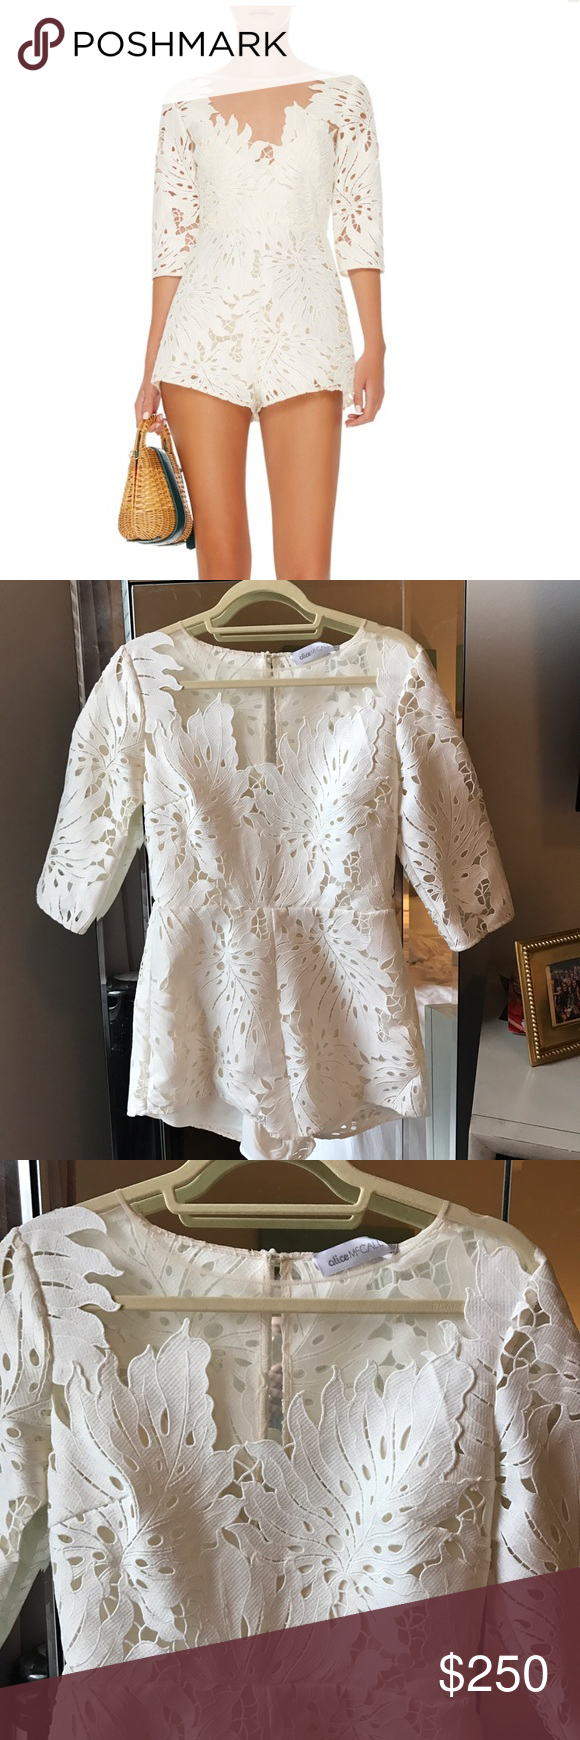 cd66a18c24 Alice McCall Rumours Lace Playsuit Romper White Gorgeous romper!! Bought  for graduation thinking it was a AUS 6---but it is actually USA 6 (AUS 10).